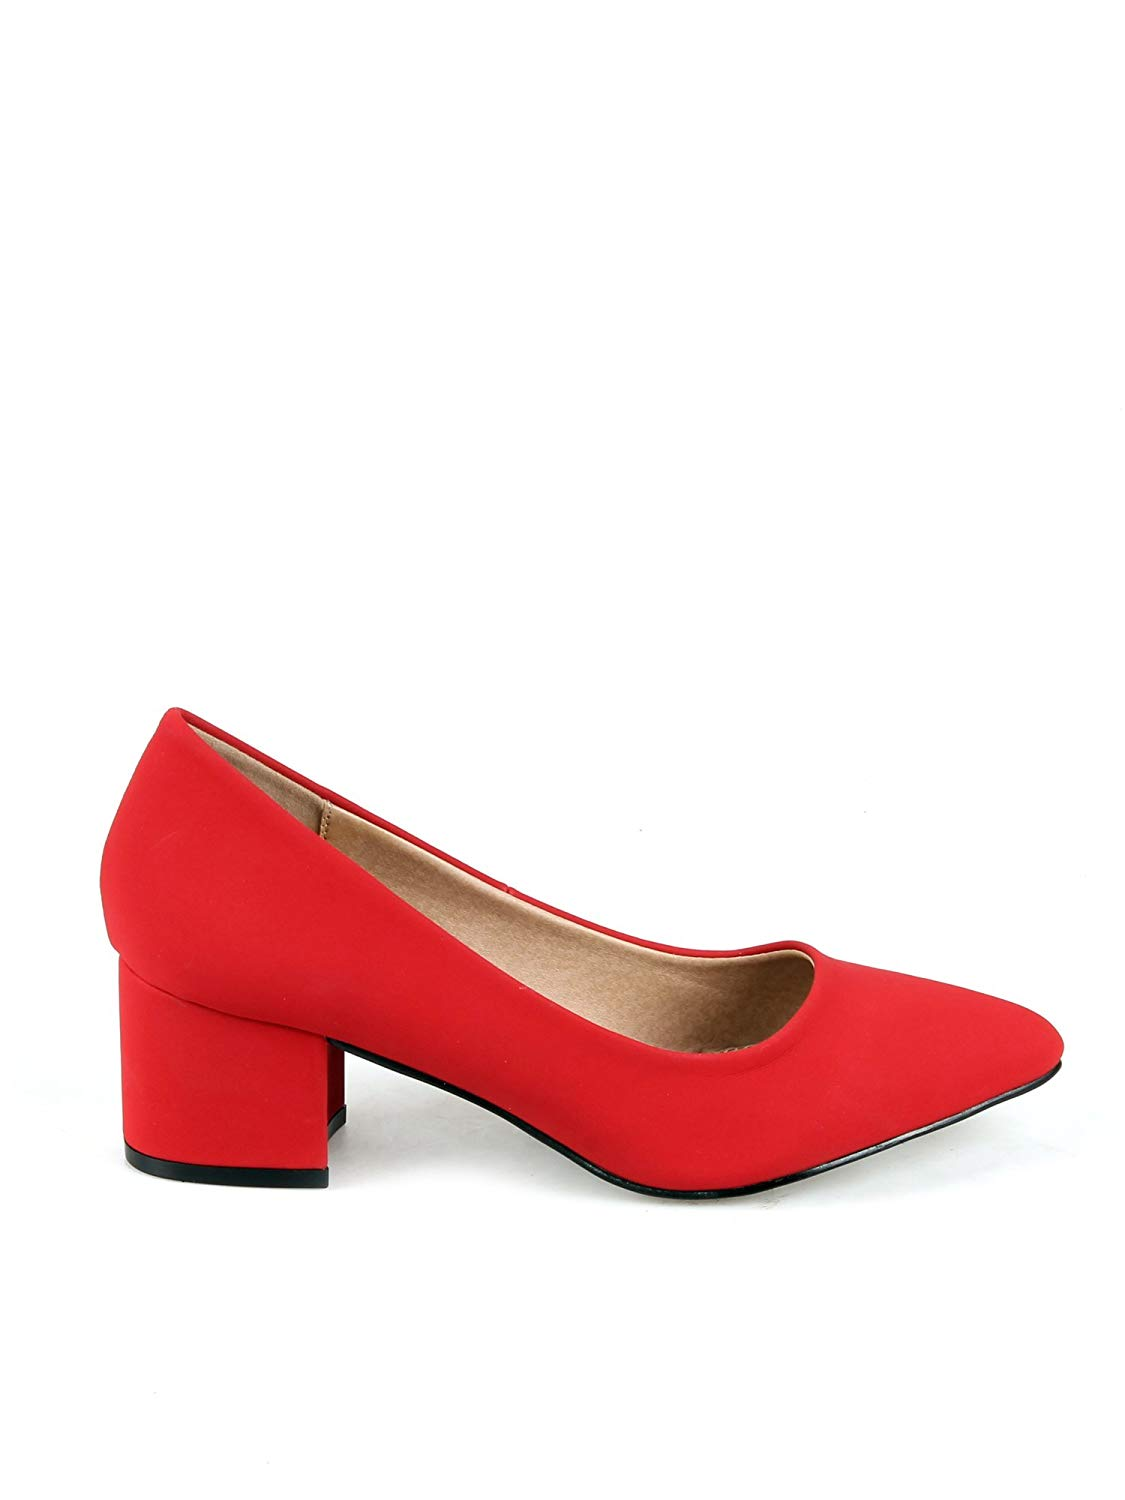 83407ae8b32 Mark and Maddux Chunky Heel Women s Pointed Pumps in Red